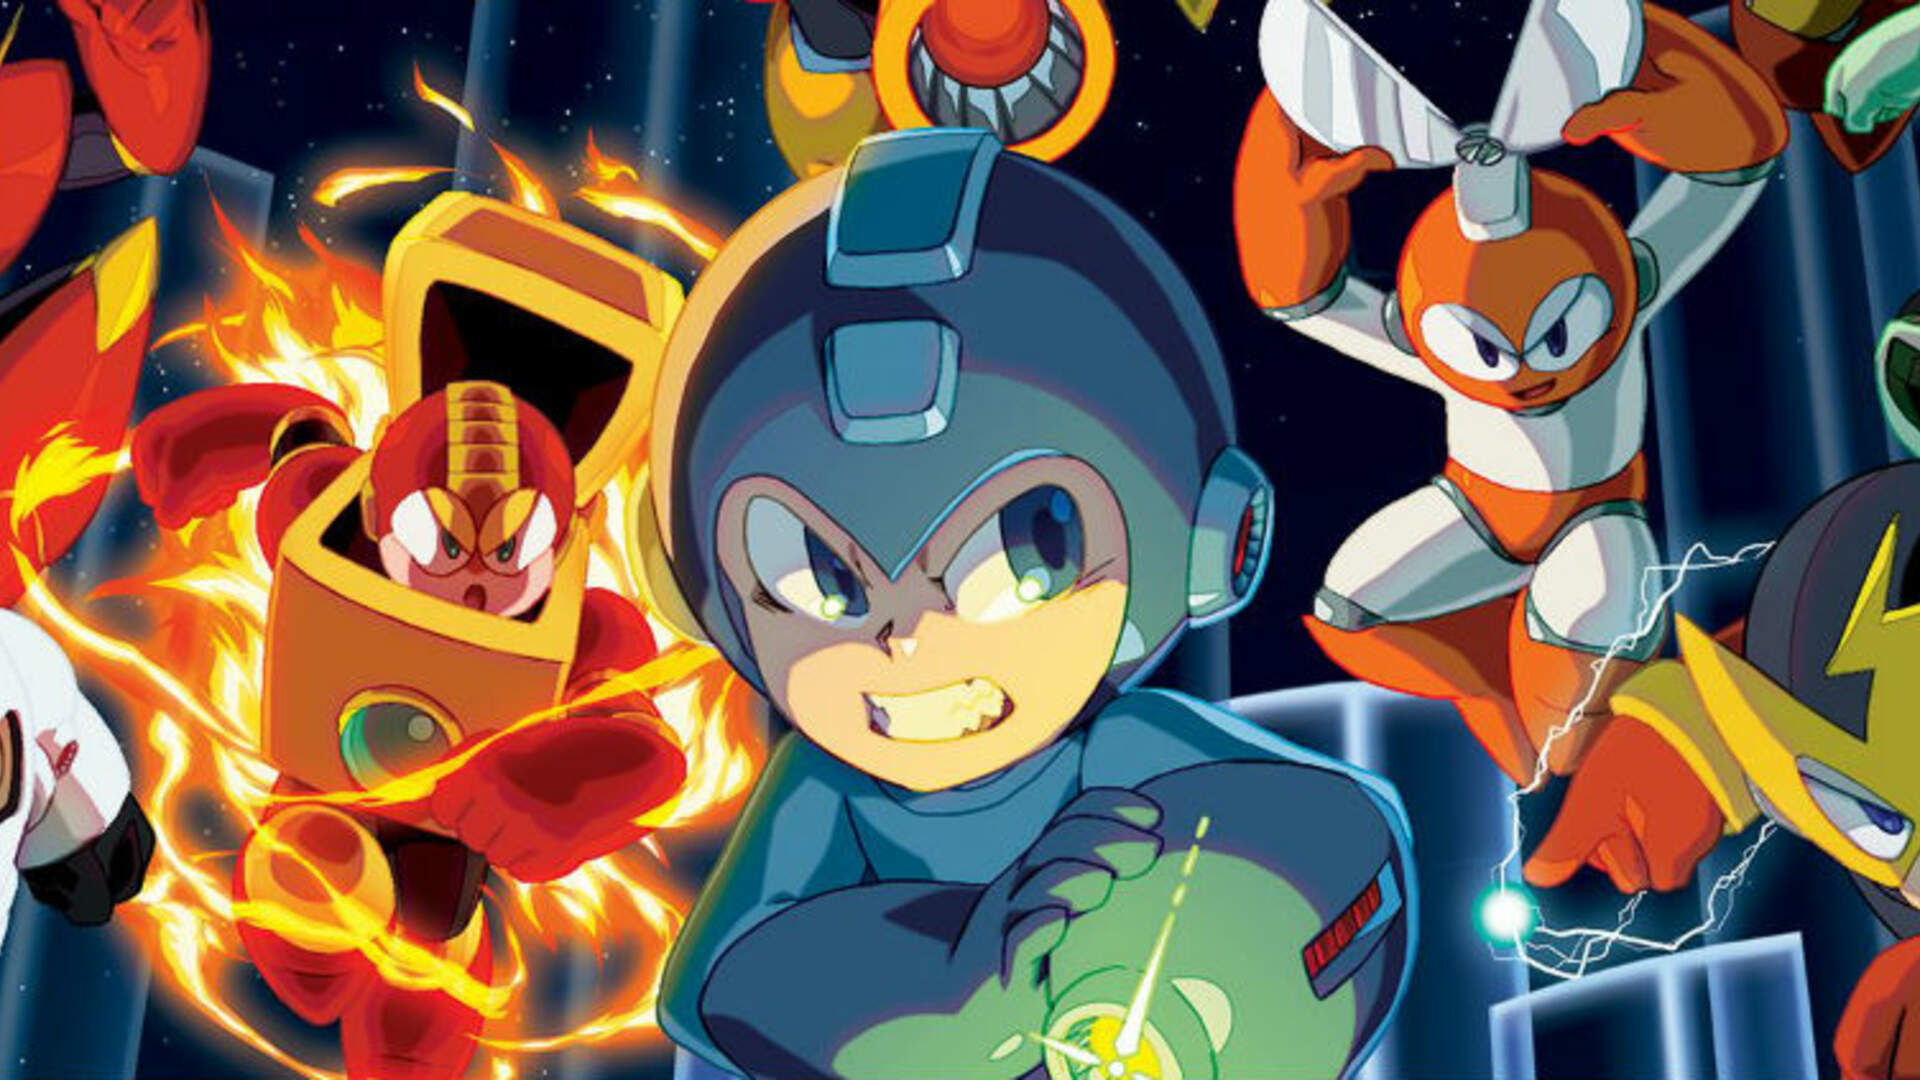 UPDATE: Nadia is Streaming Classic Mega Man Games at 1 PM PT / 4 PM ET Instead of Mighty No. 9